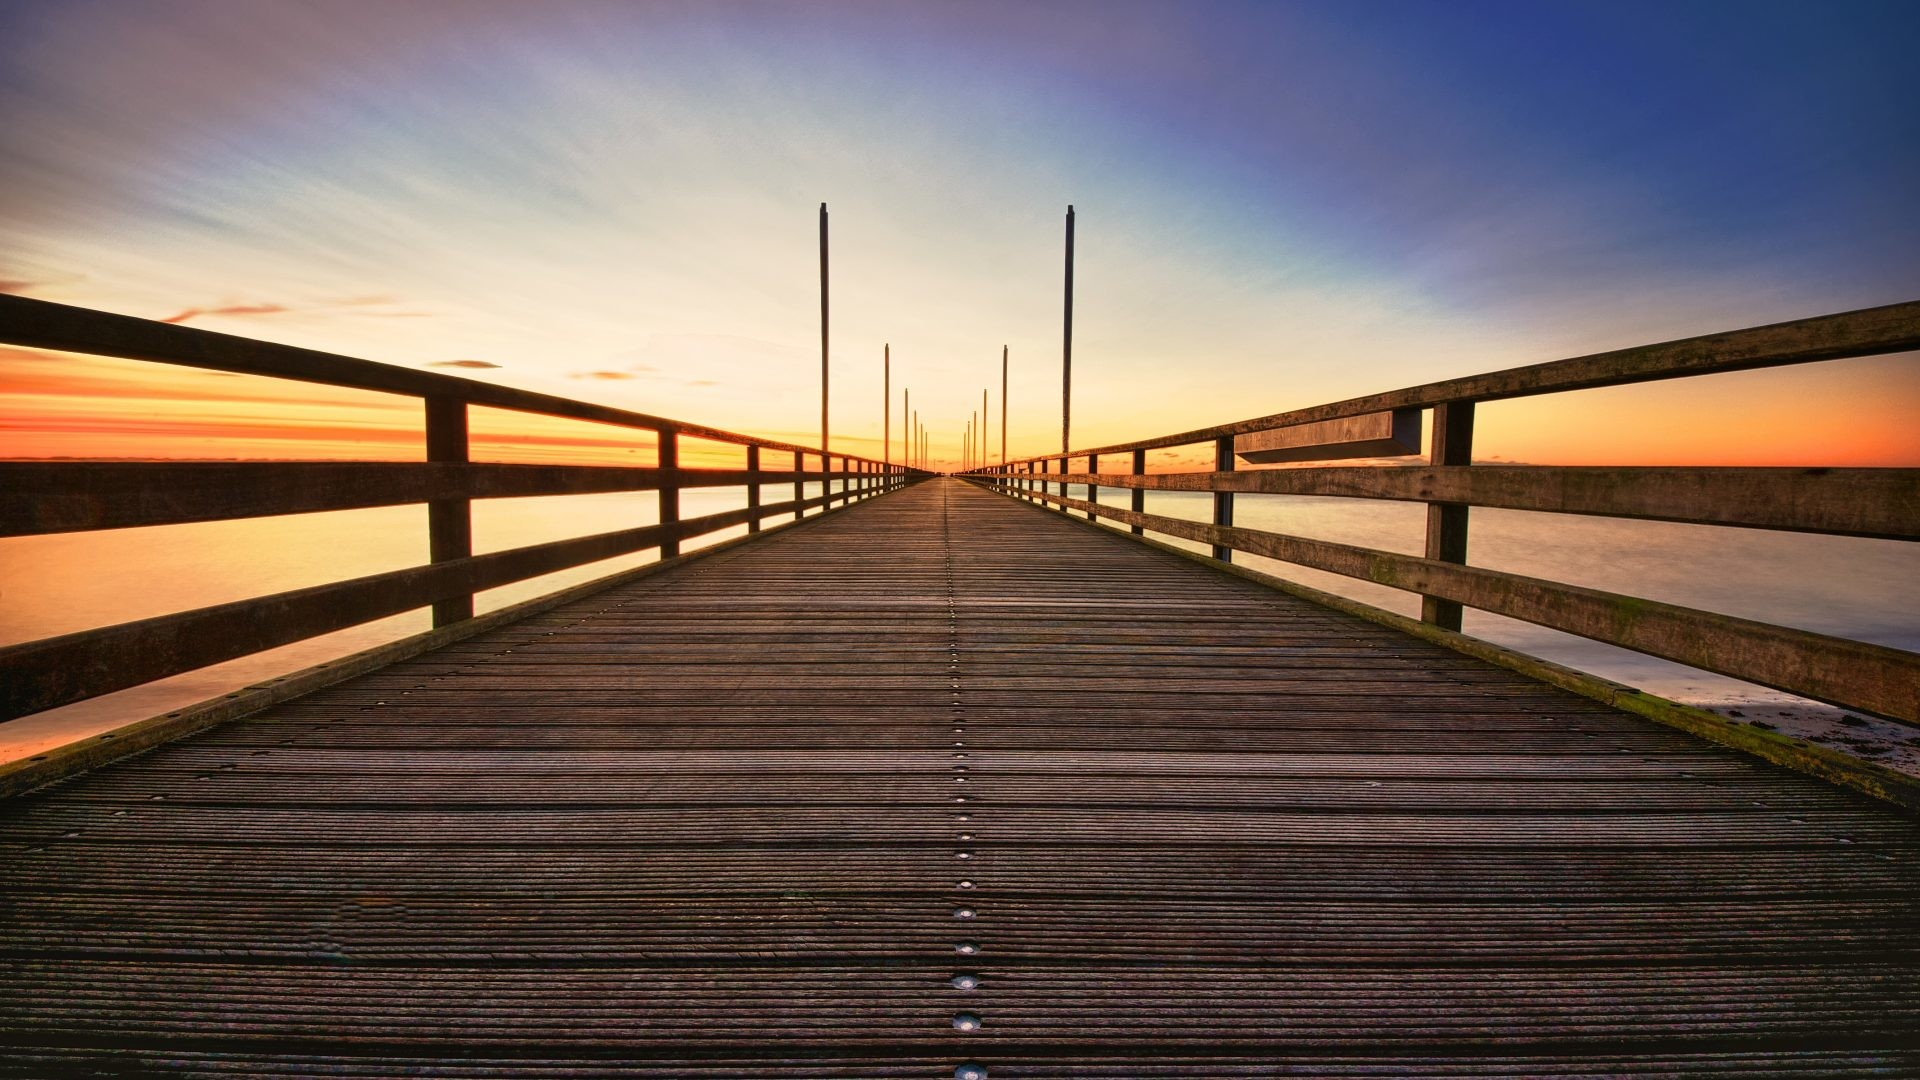 Perspective Tag - Perspective Images Full Hd - HD Wallpaper